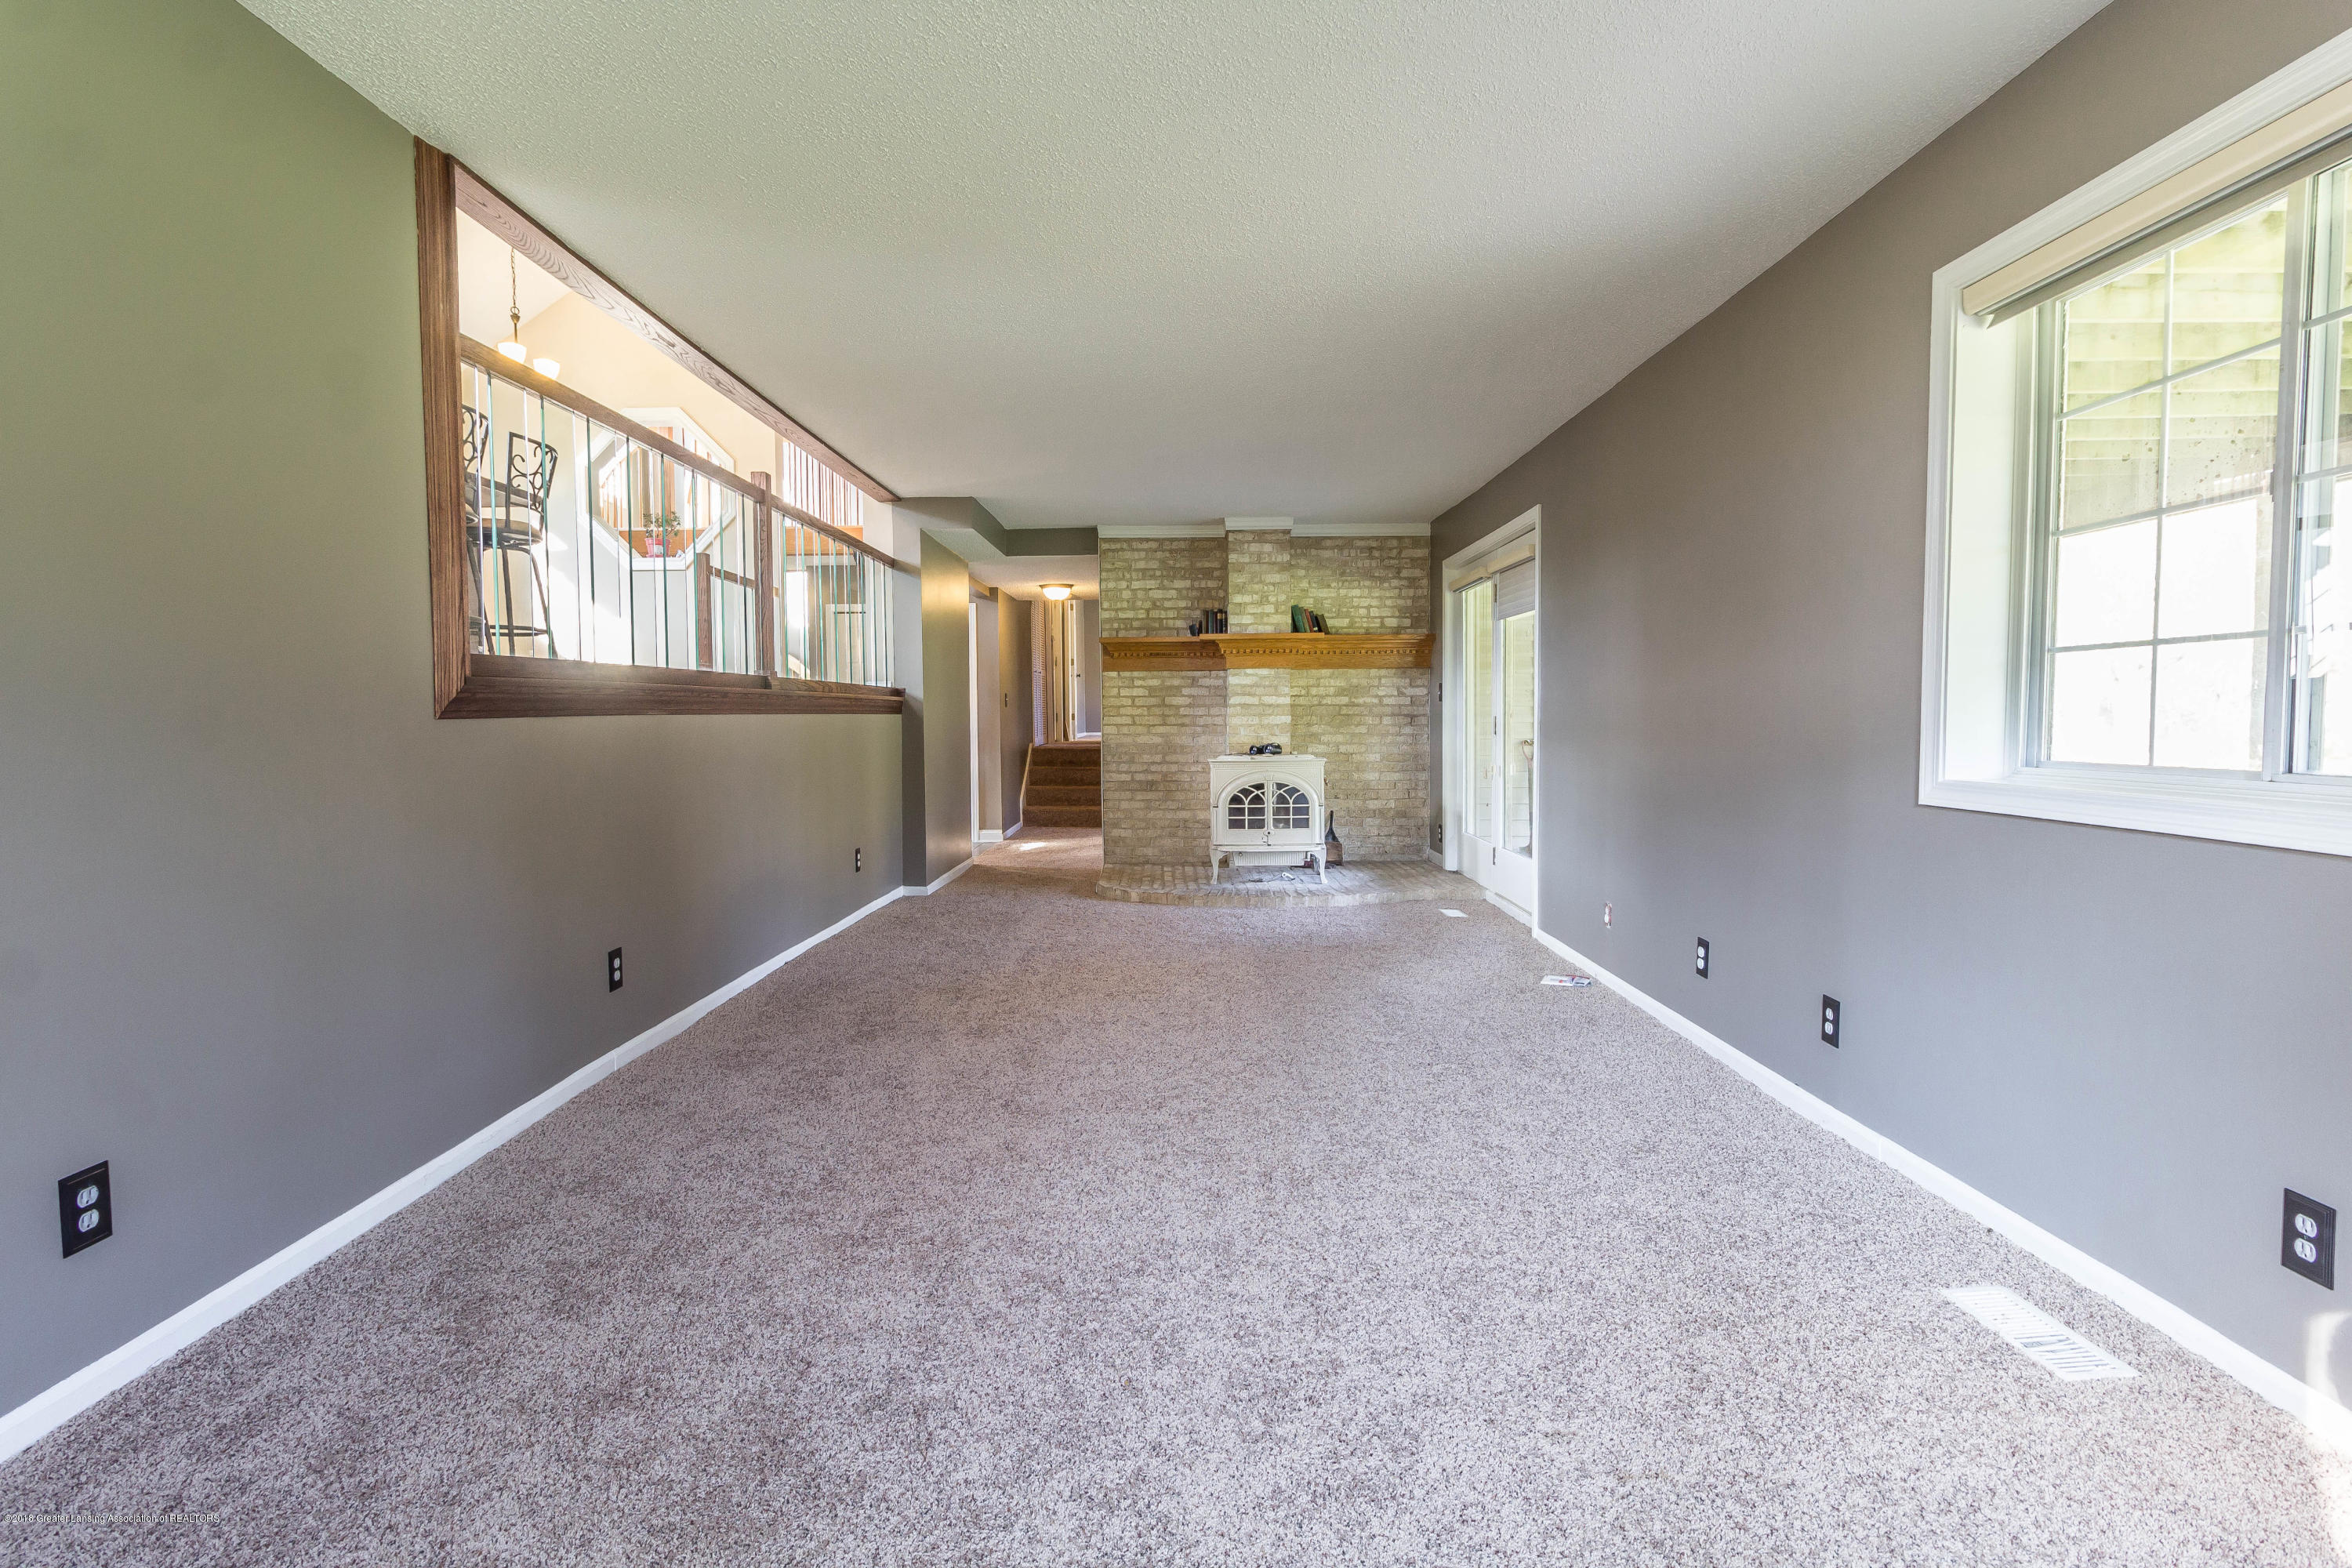 1656 W 5 Point Hwy - Living room - 12